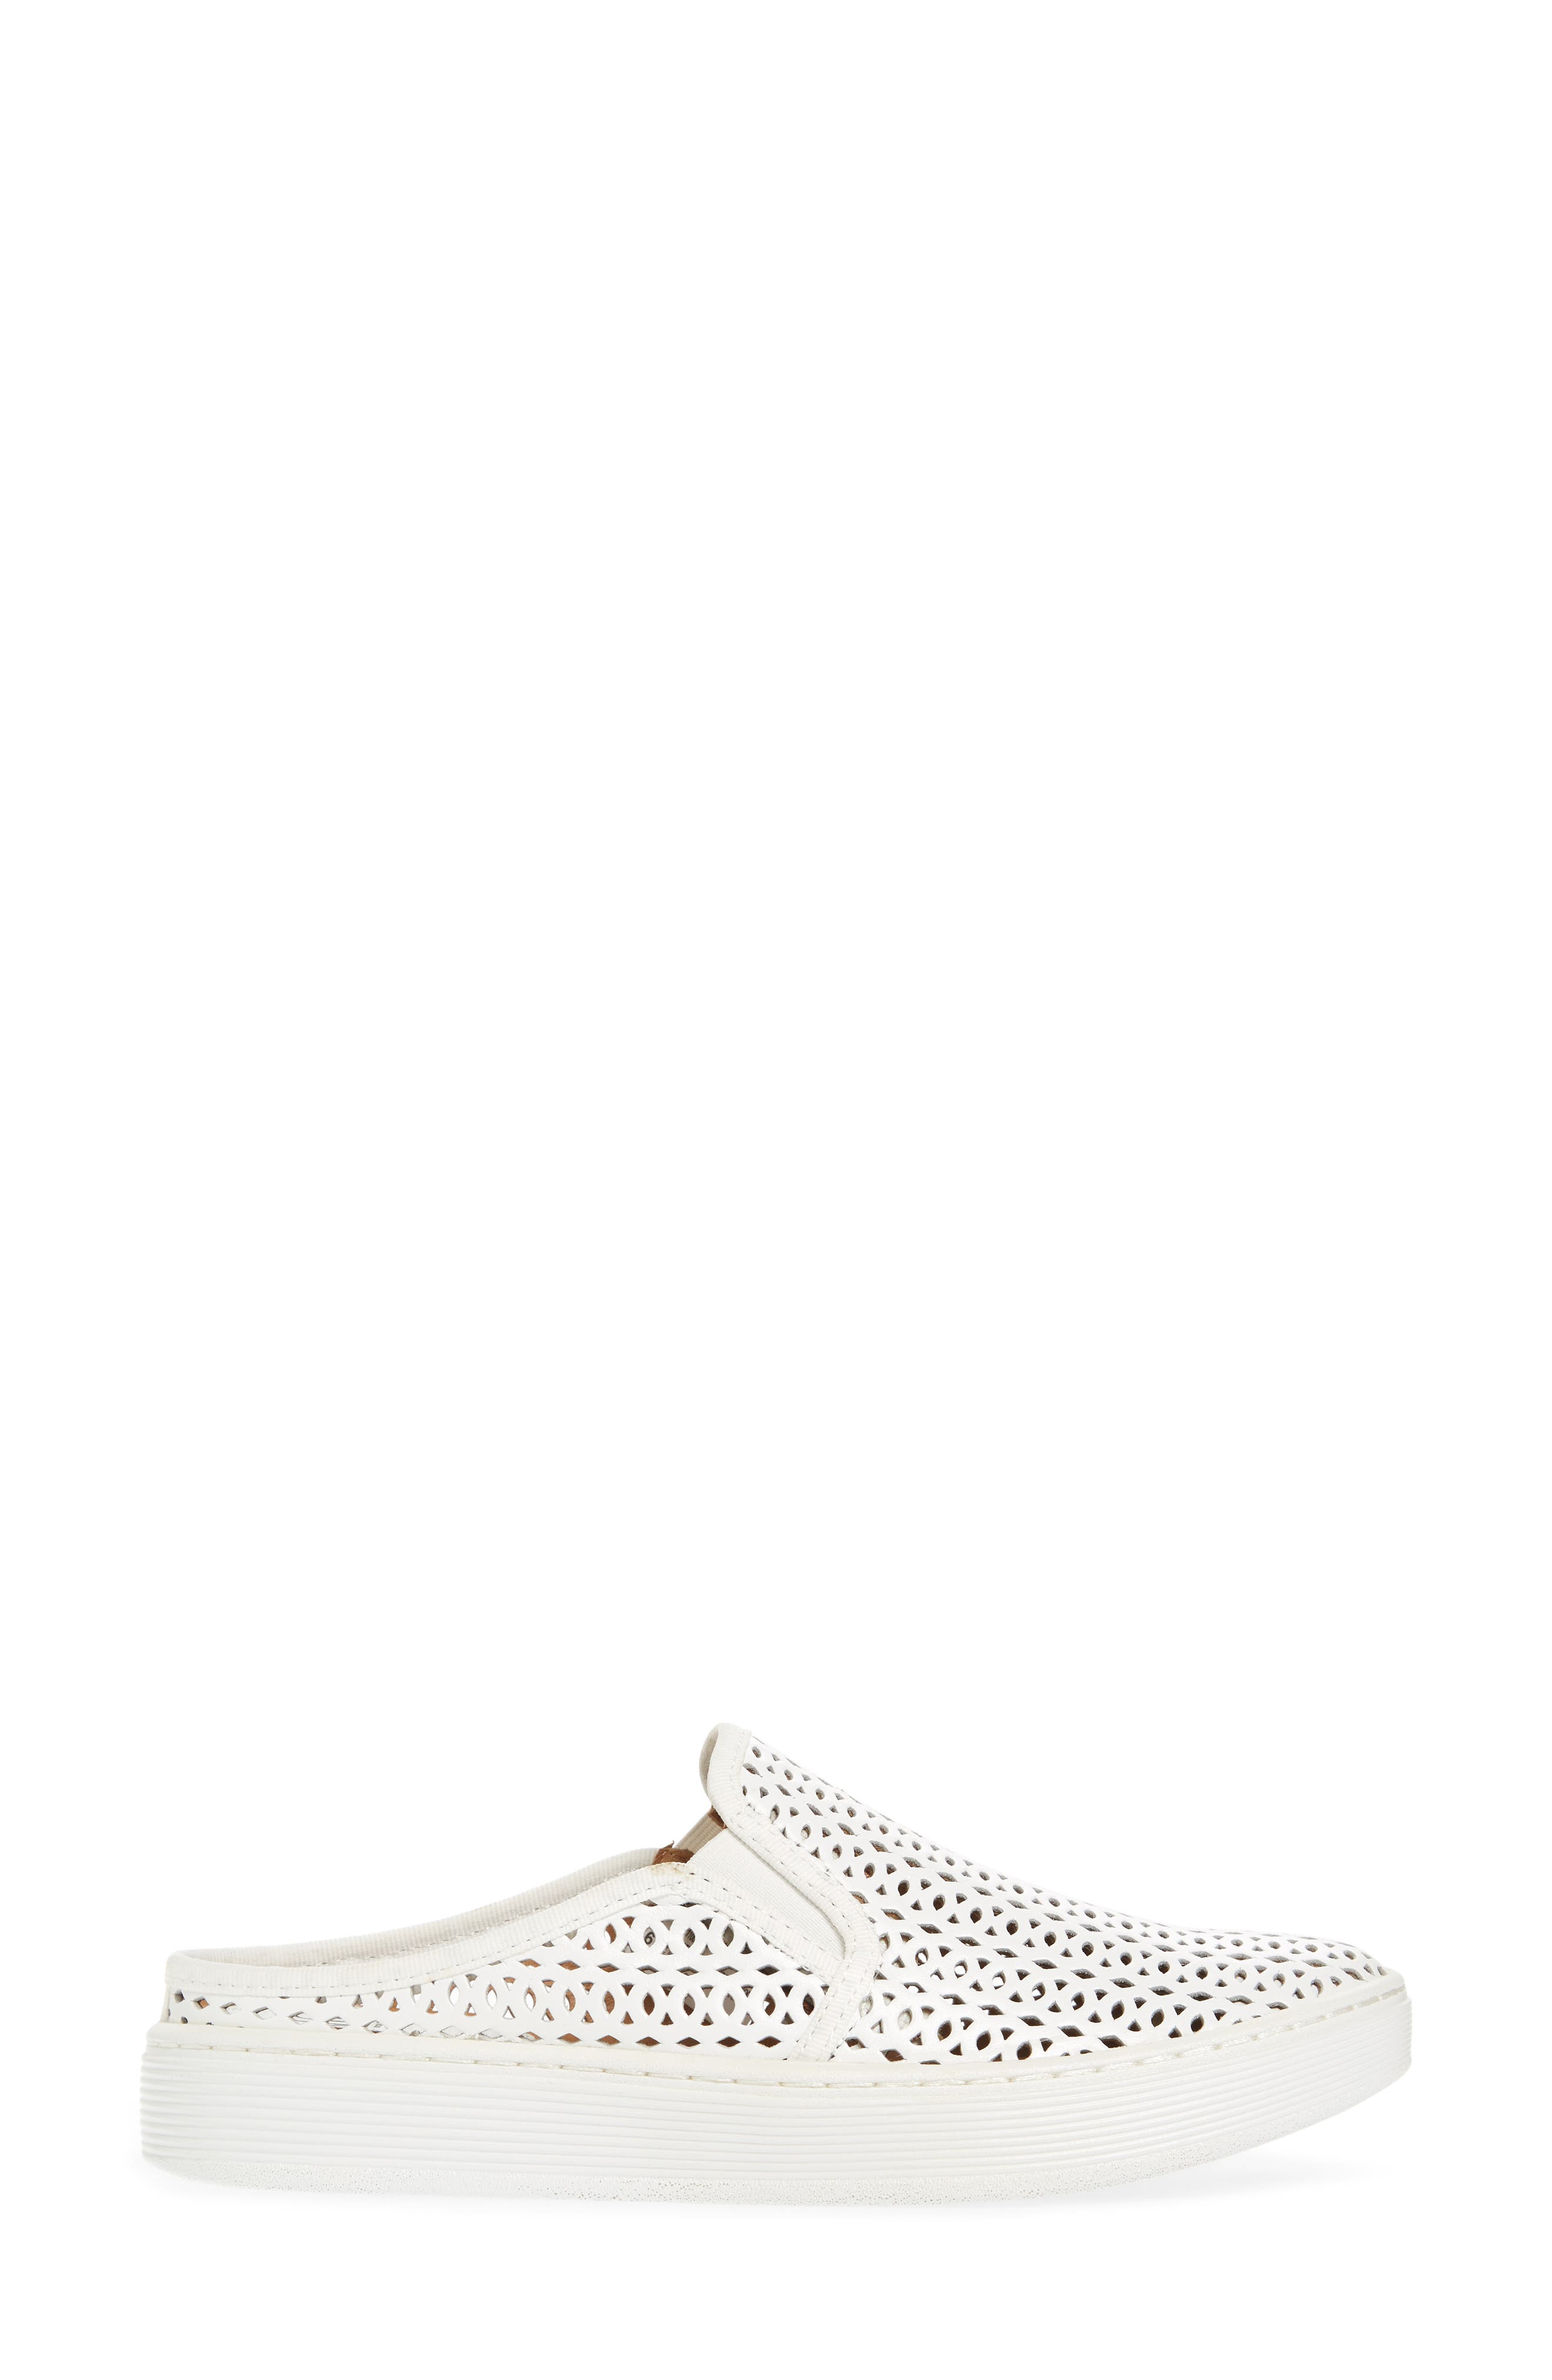 Somers II Sneaker,                             Alternate thumbnail 3, color,                             WHITE LEATHER